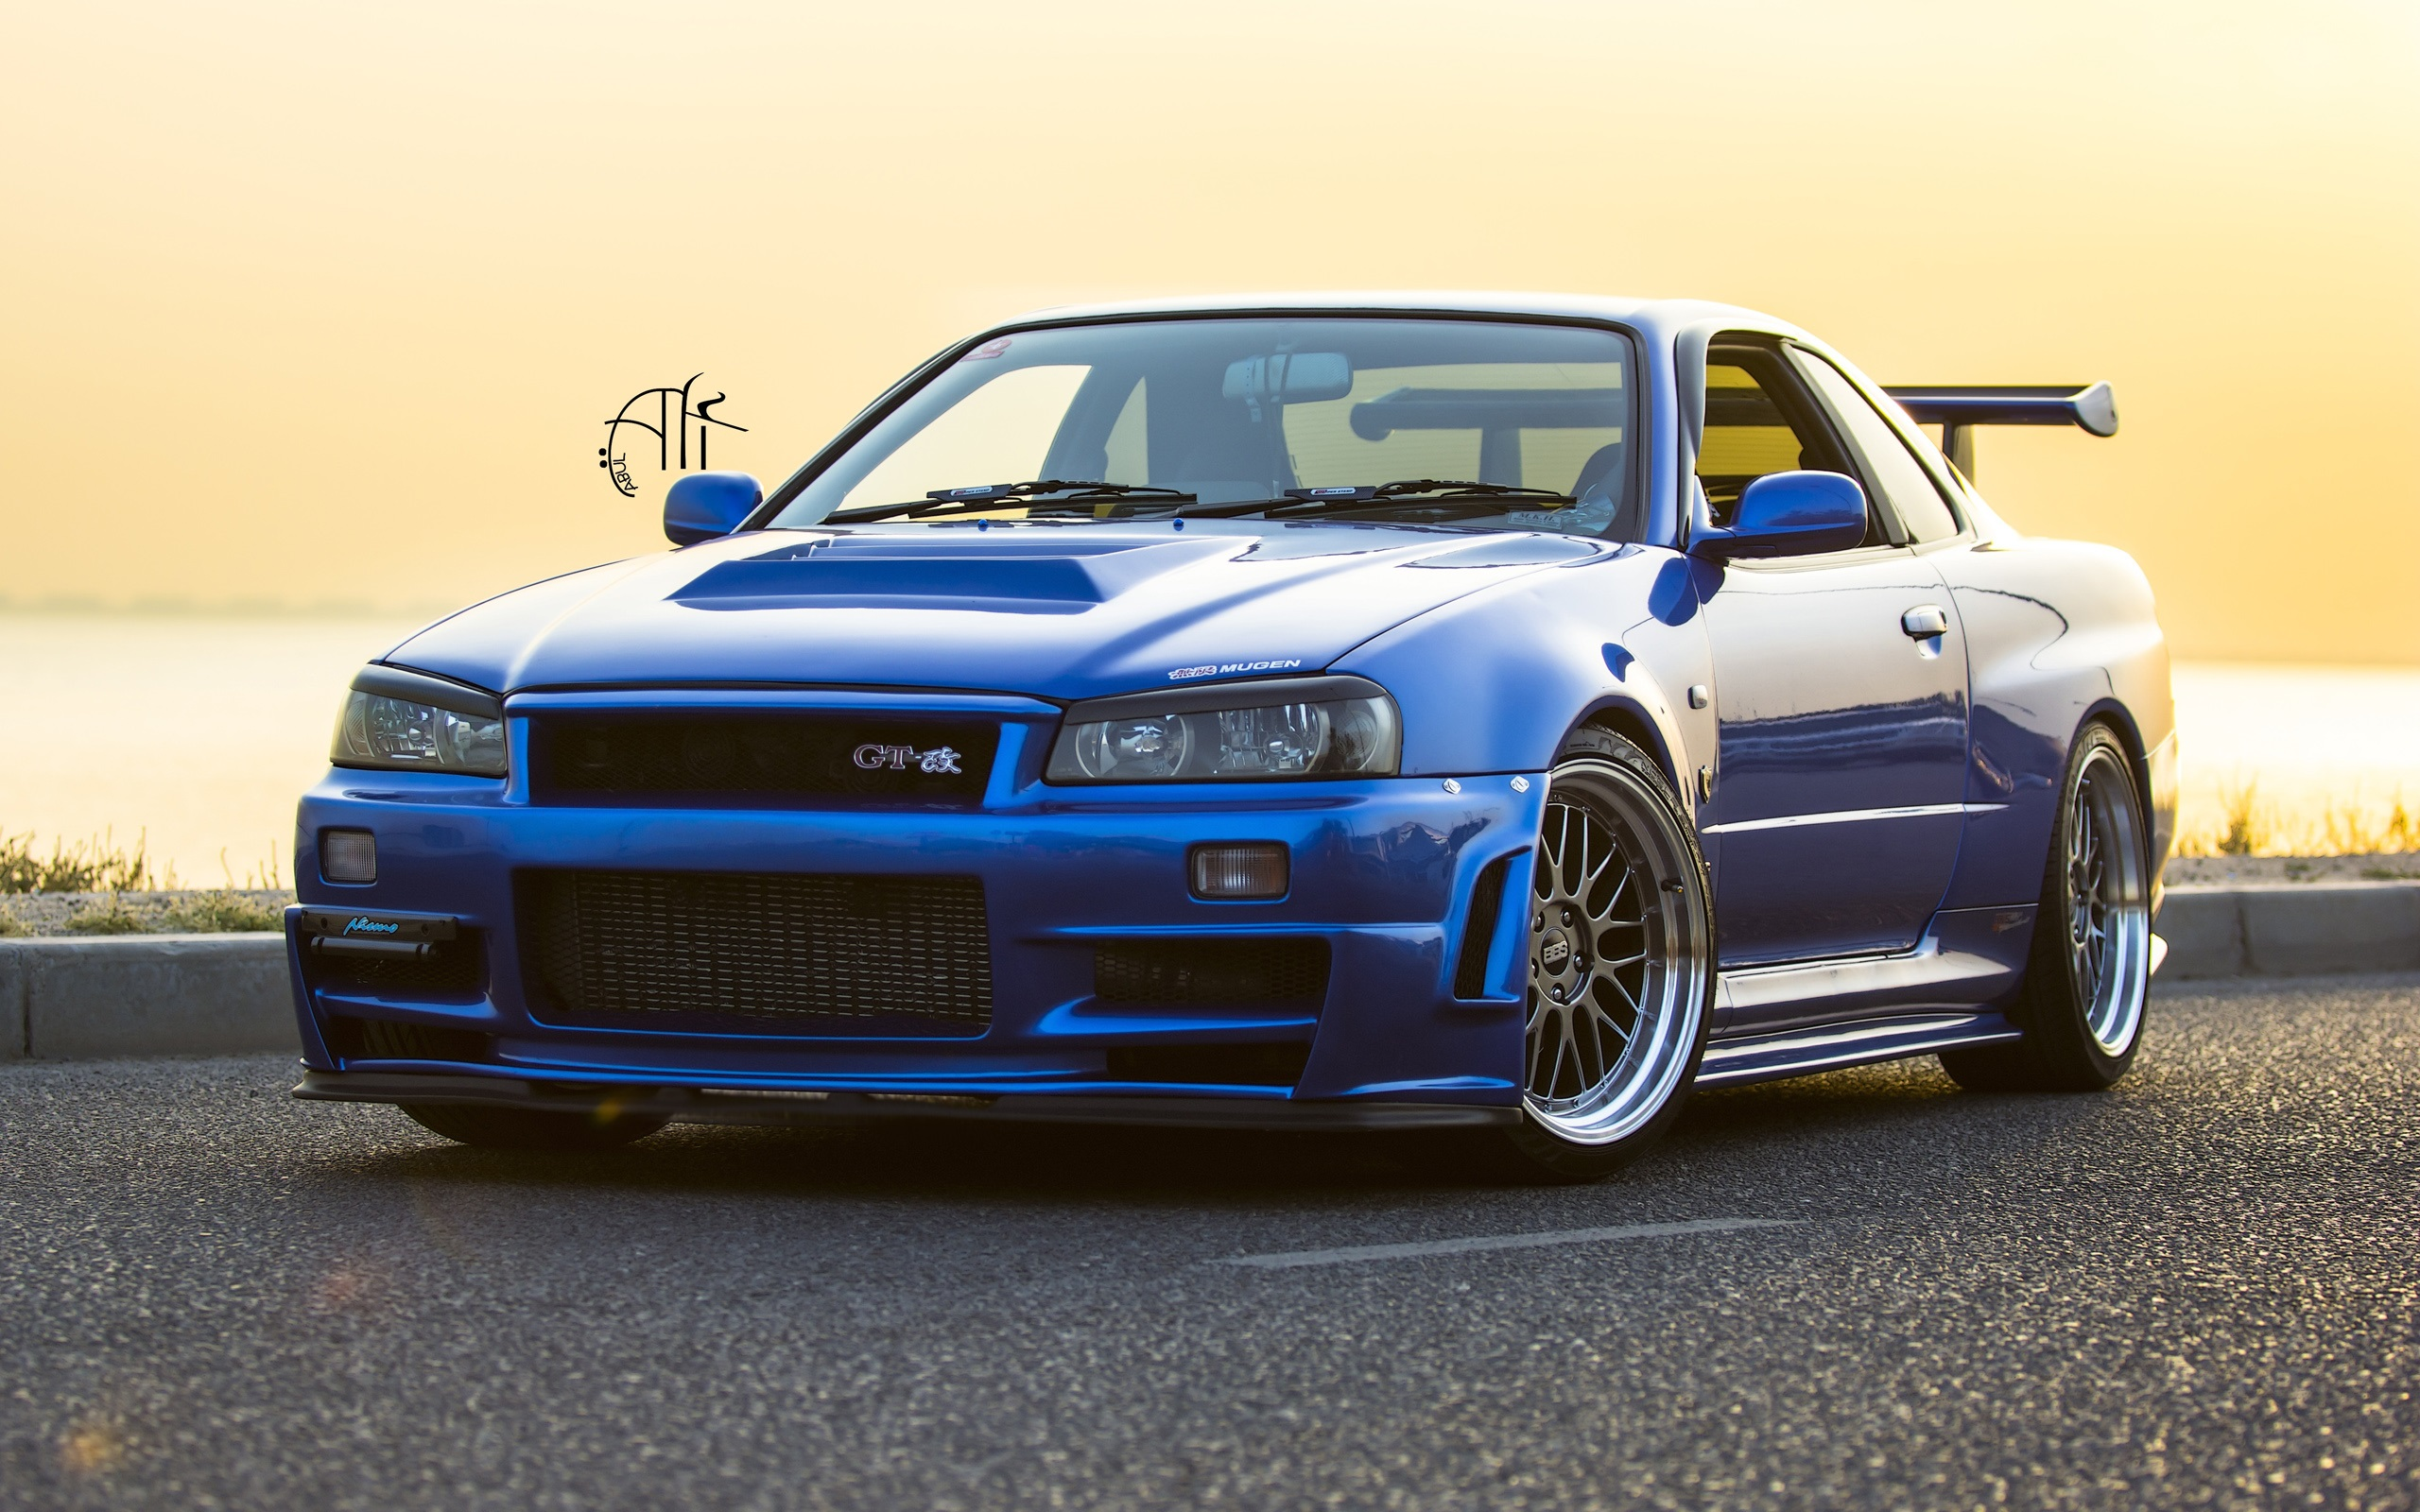 2560x1600 Nissan GTR R34 Wallpaper, Blue Car | HD Wallpapers Pictures